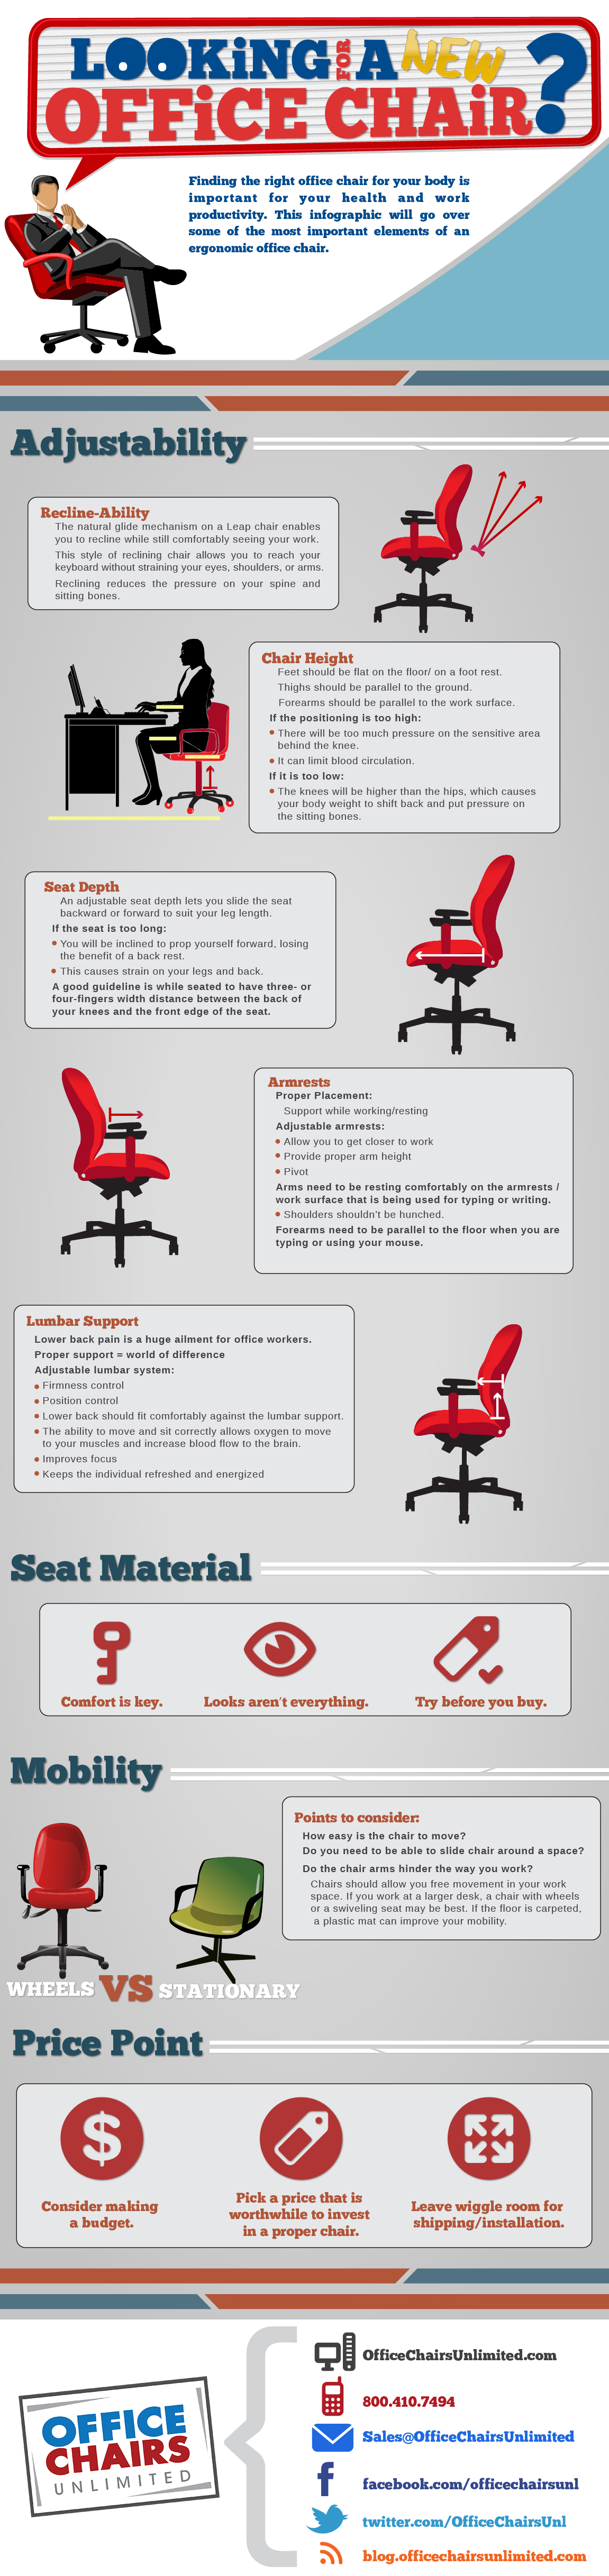 home chair ergonomic chairs tilt dsc furniture product online customizable ergospine office